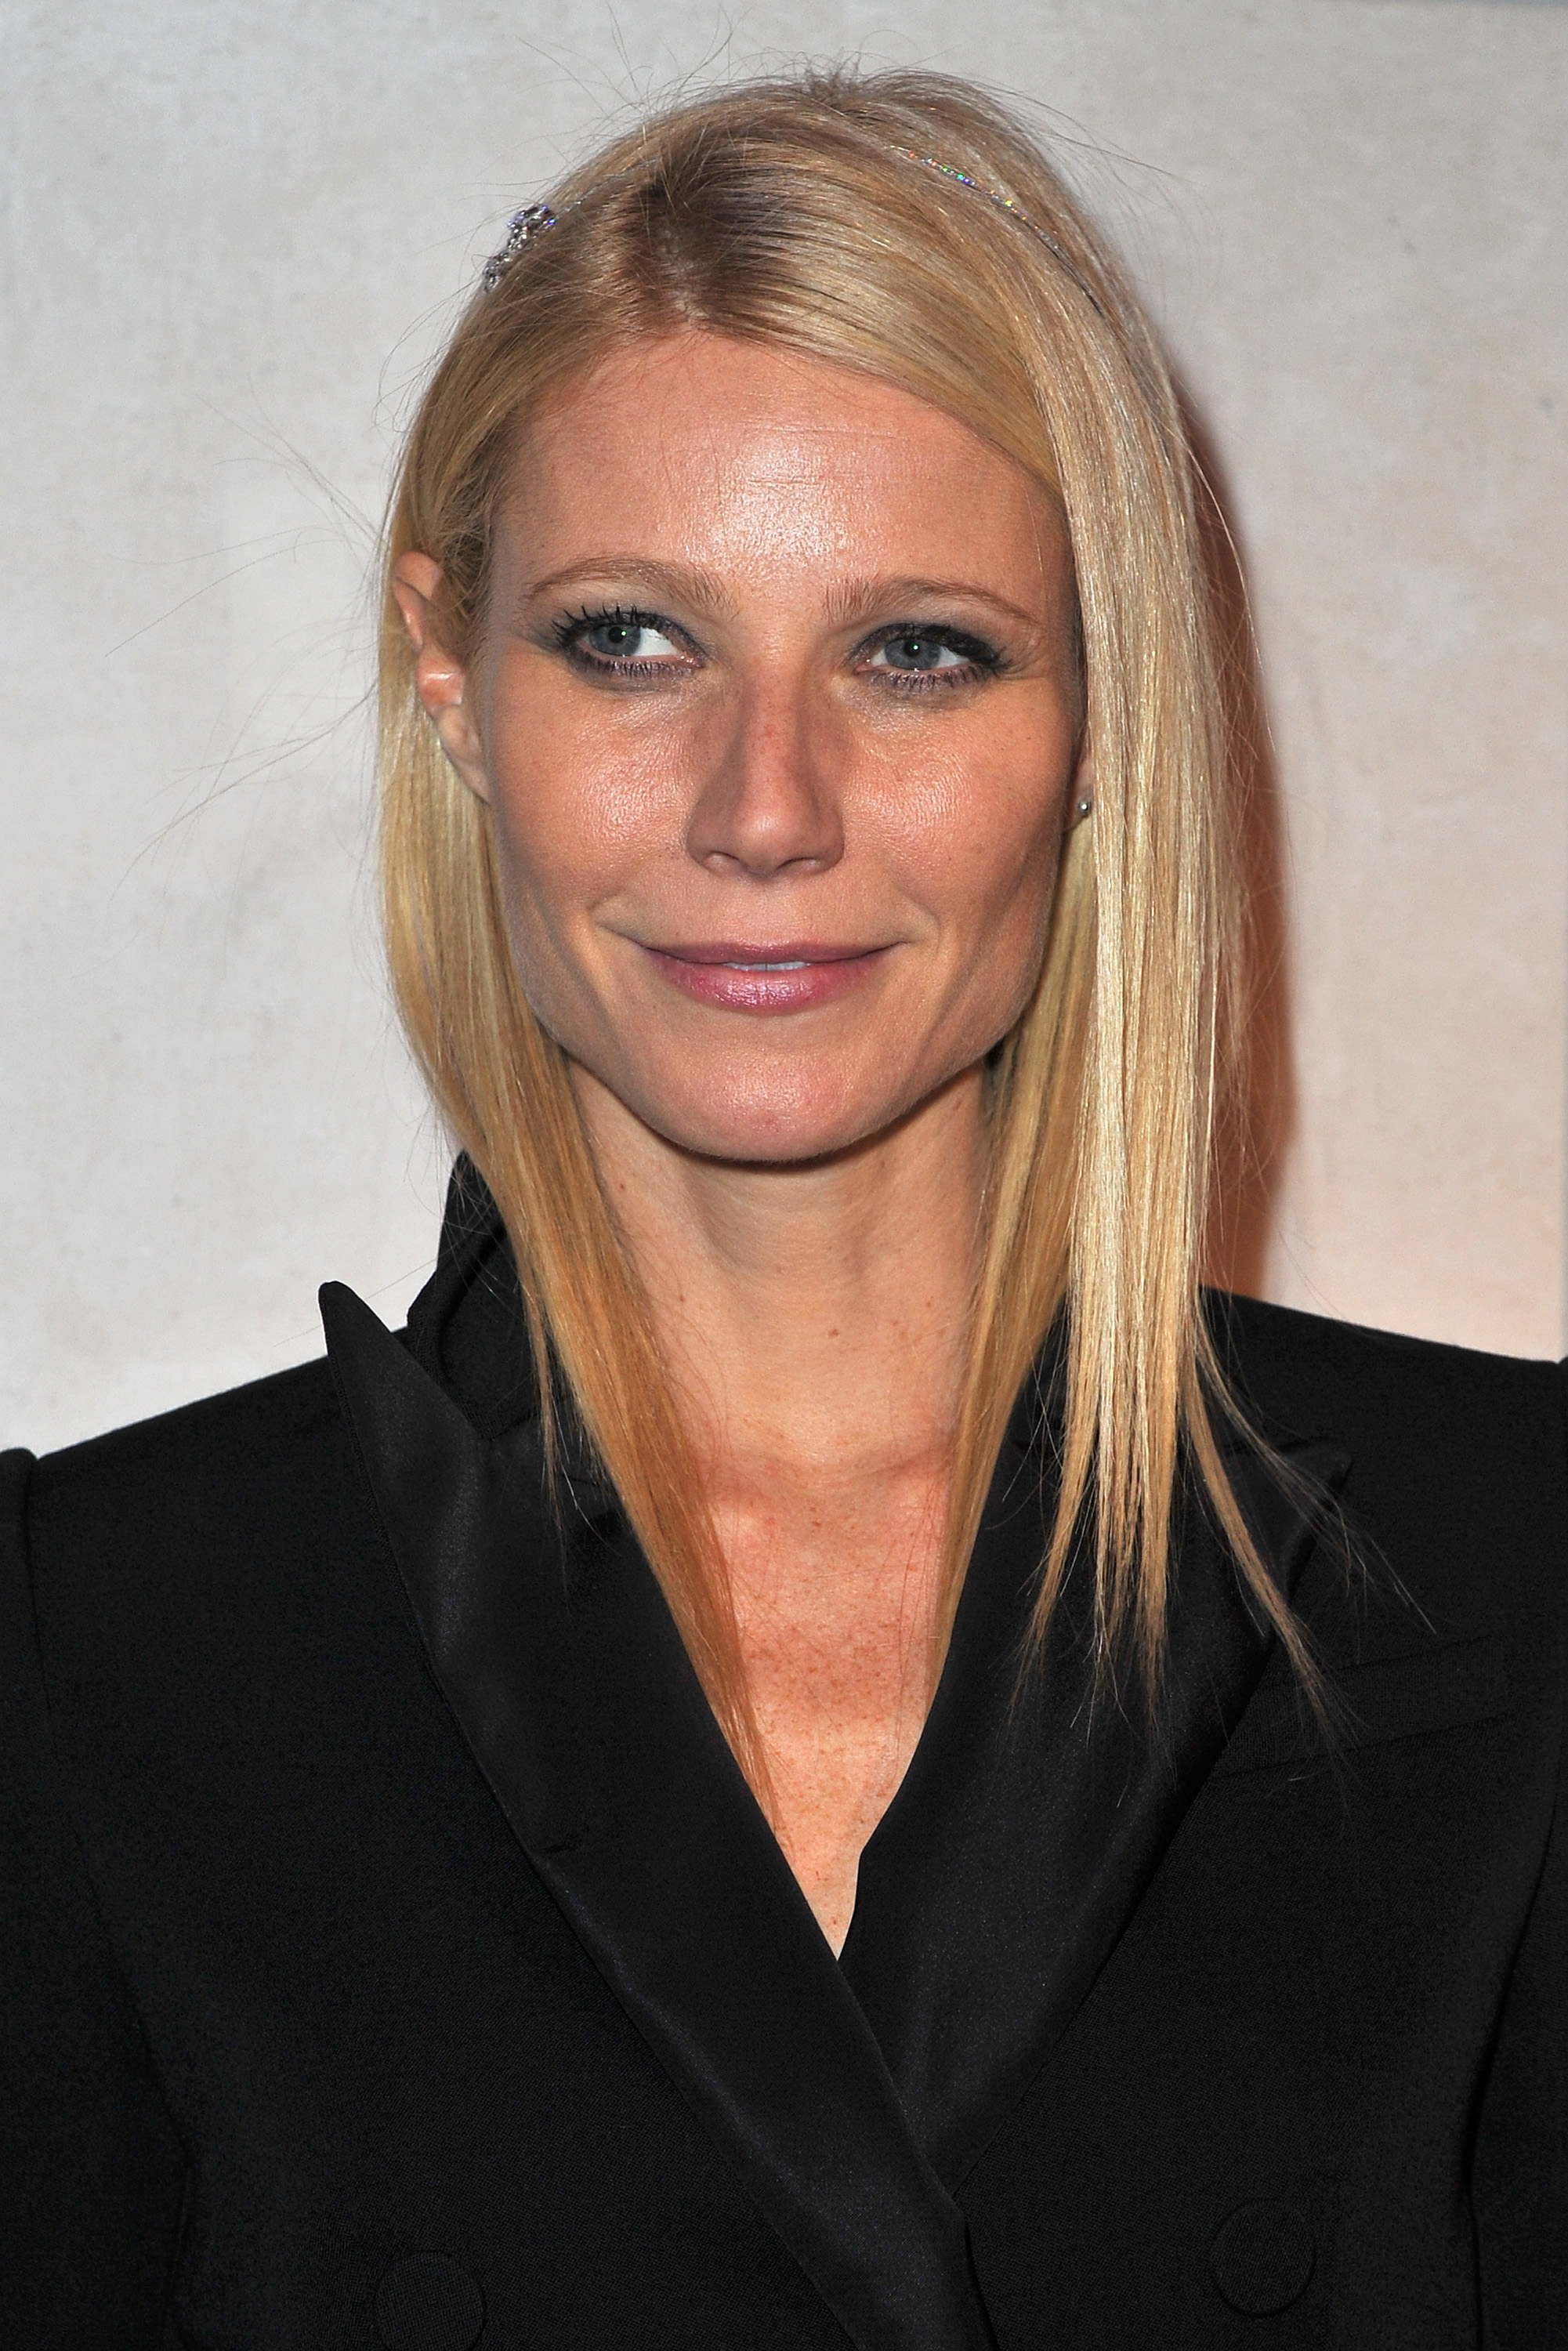 Gwyneth Paltrow Puts Her Best Foot Forward For Marc Jacobs's LV Exhibit